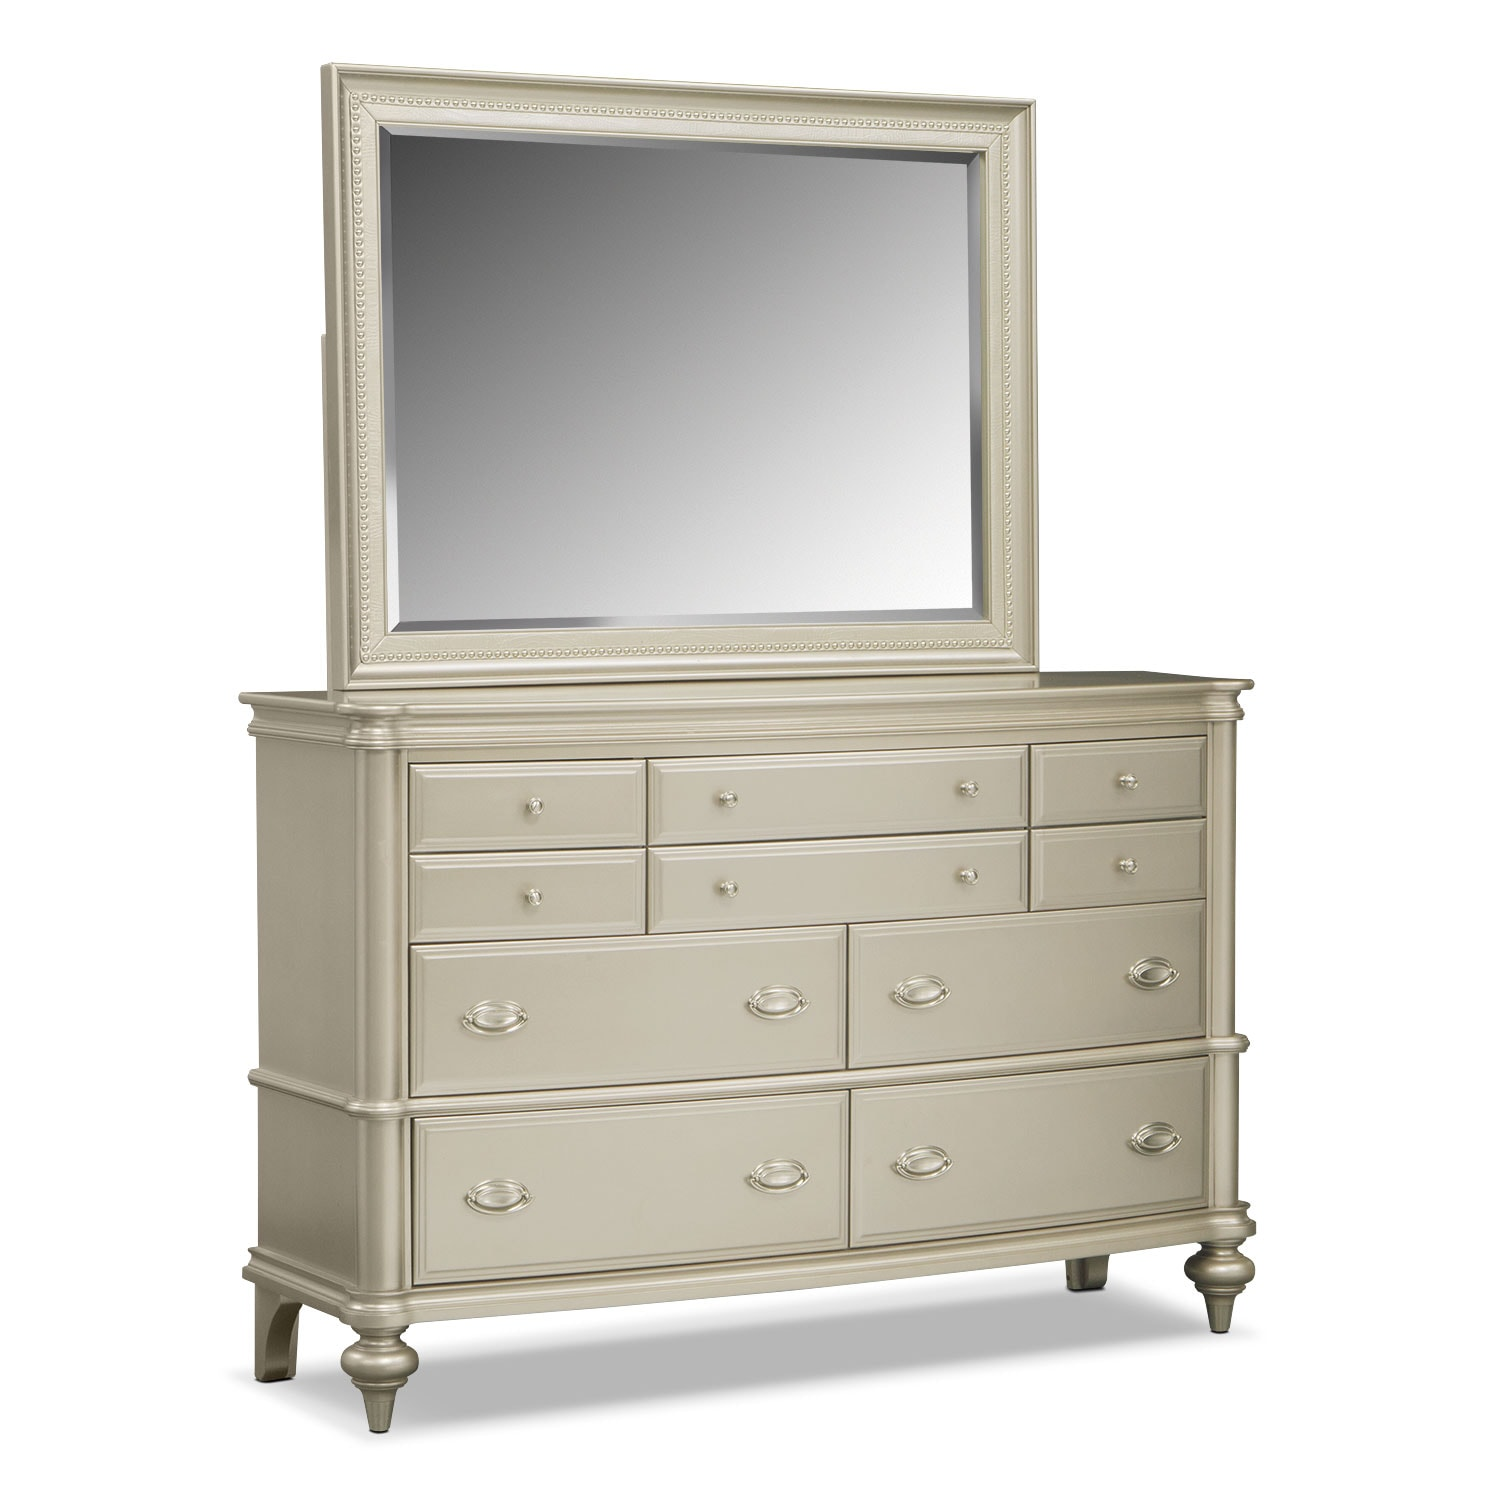 Bedroom Furniture - Esquire Dresser and Mirror - Platinum